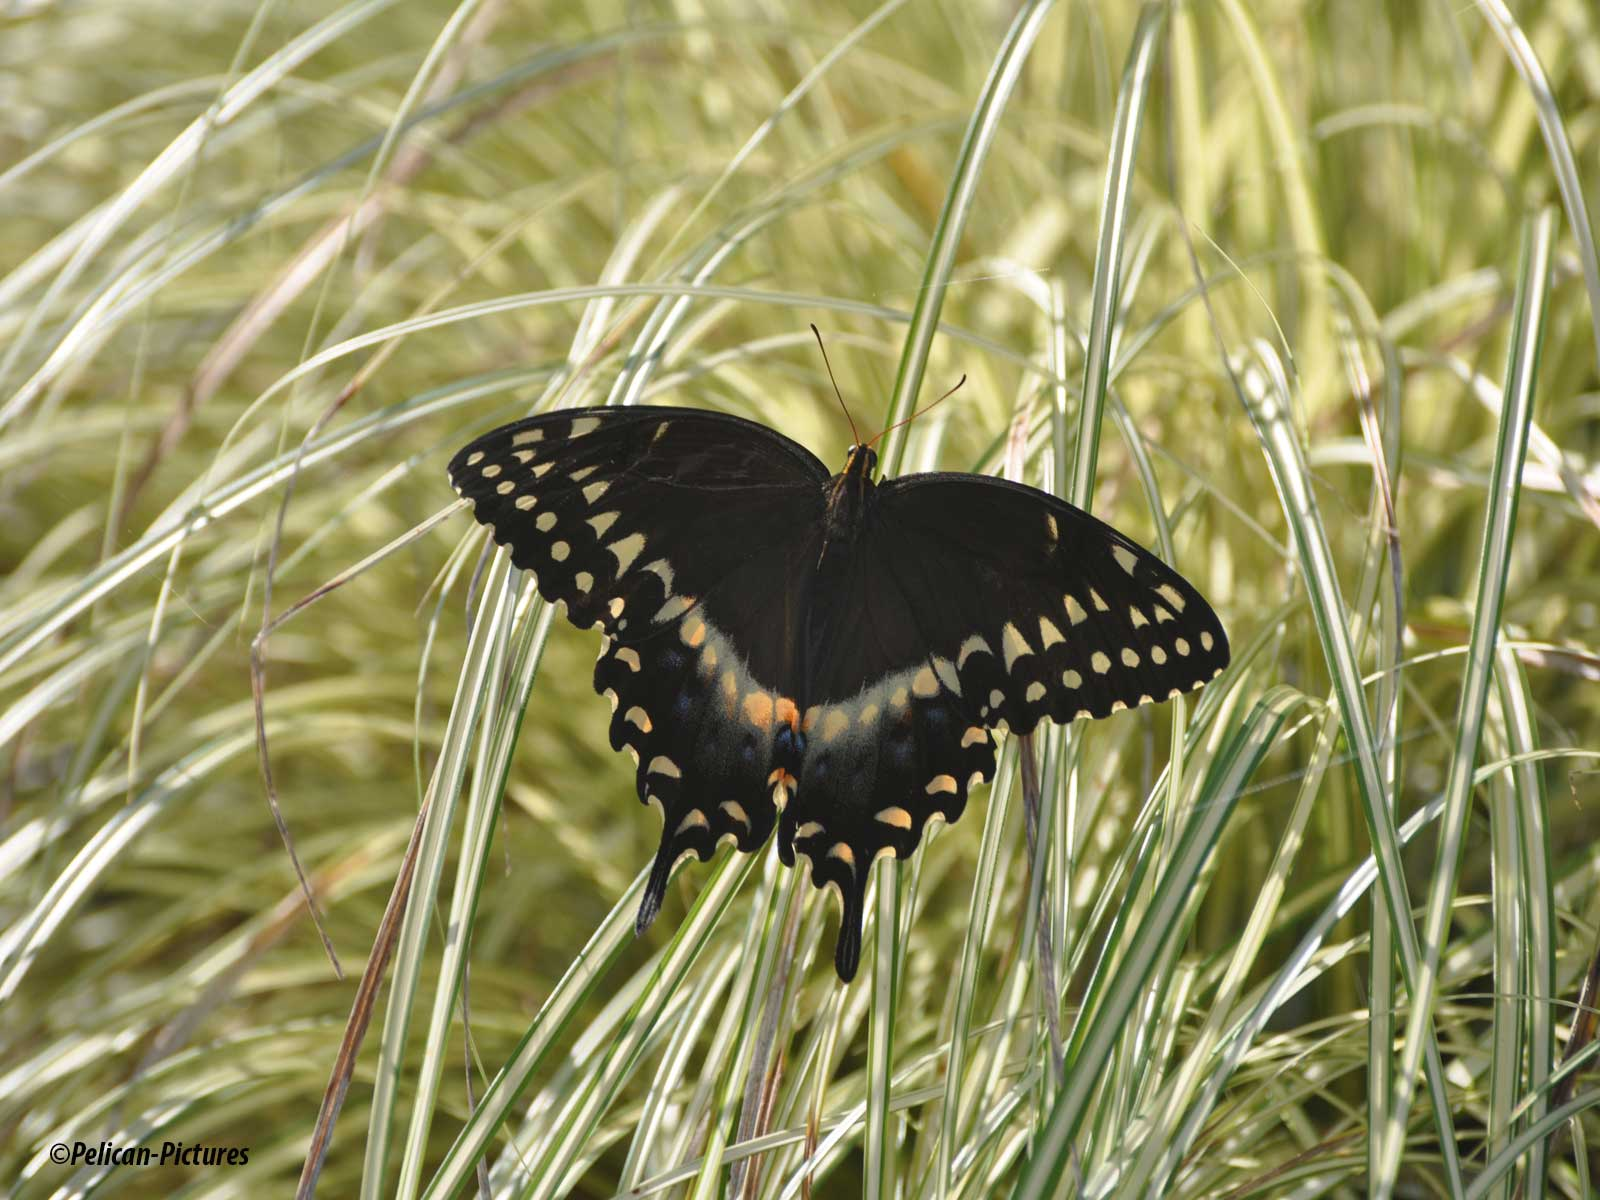 Blact Swallowtail At Rest Pelican-Pictures